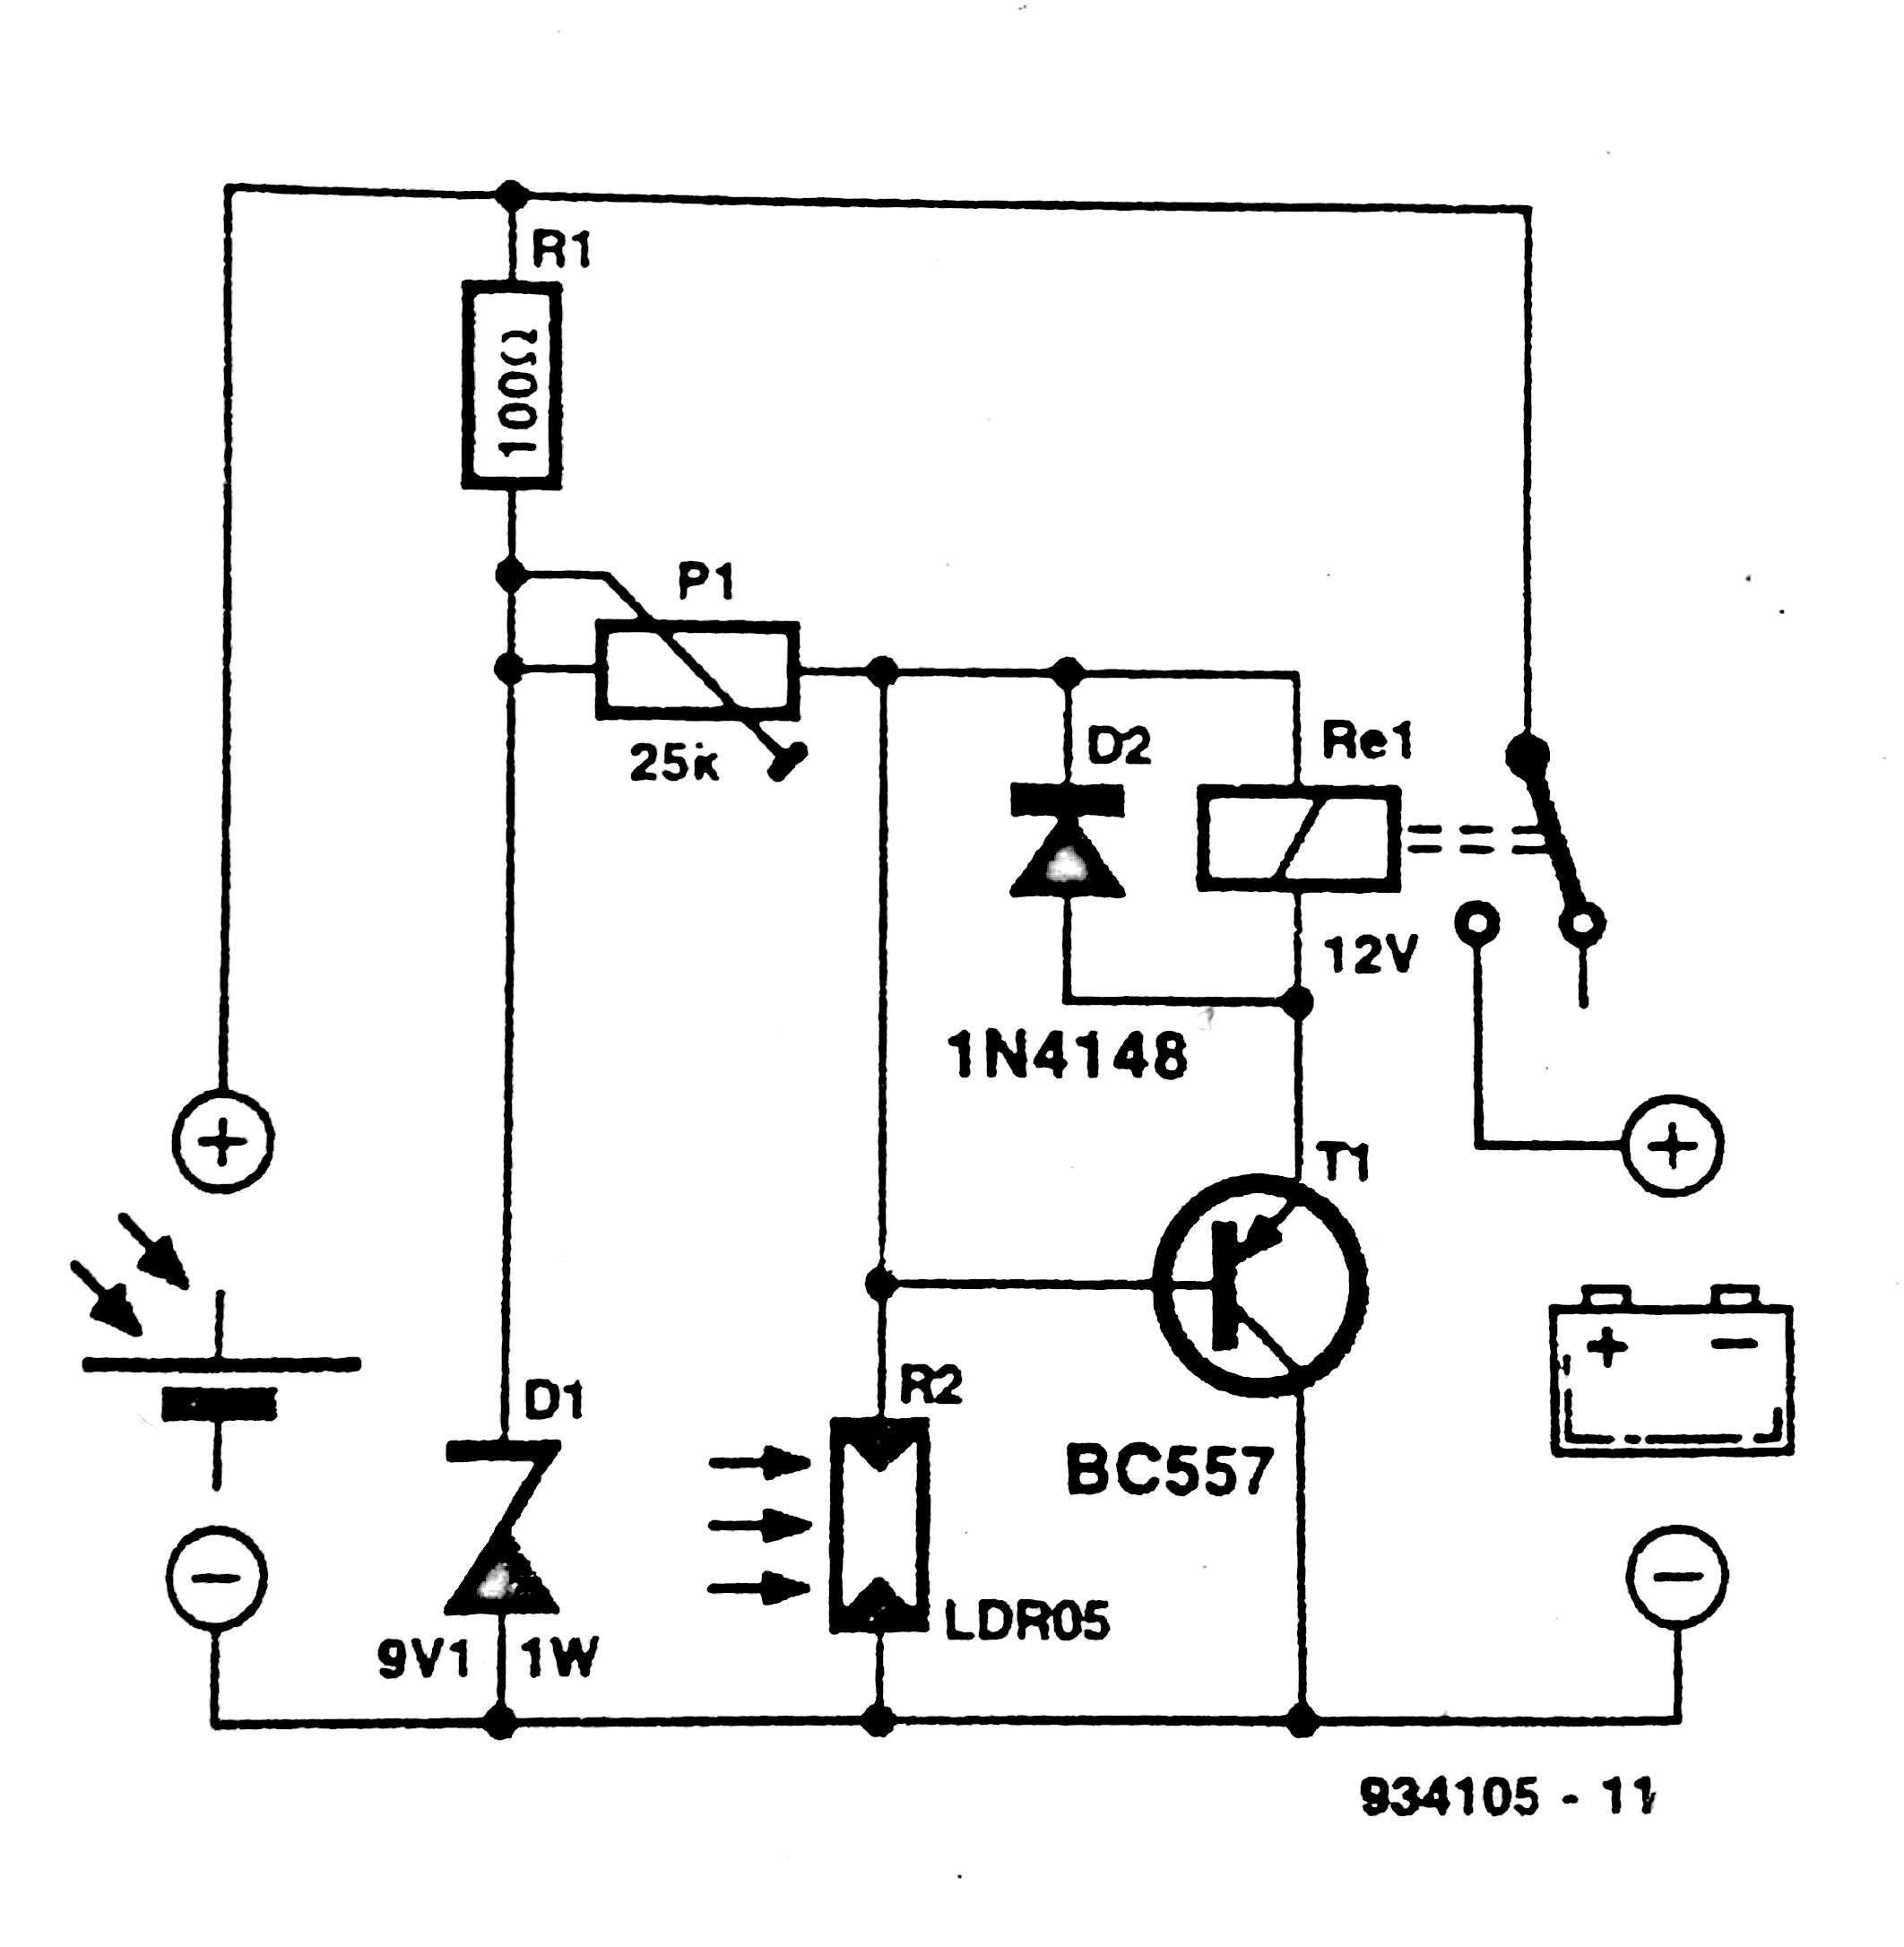 Wiring Diagrams For Solar Circuits System Diagram On Electrical Breaker Box Panel Switch Circuit